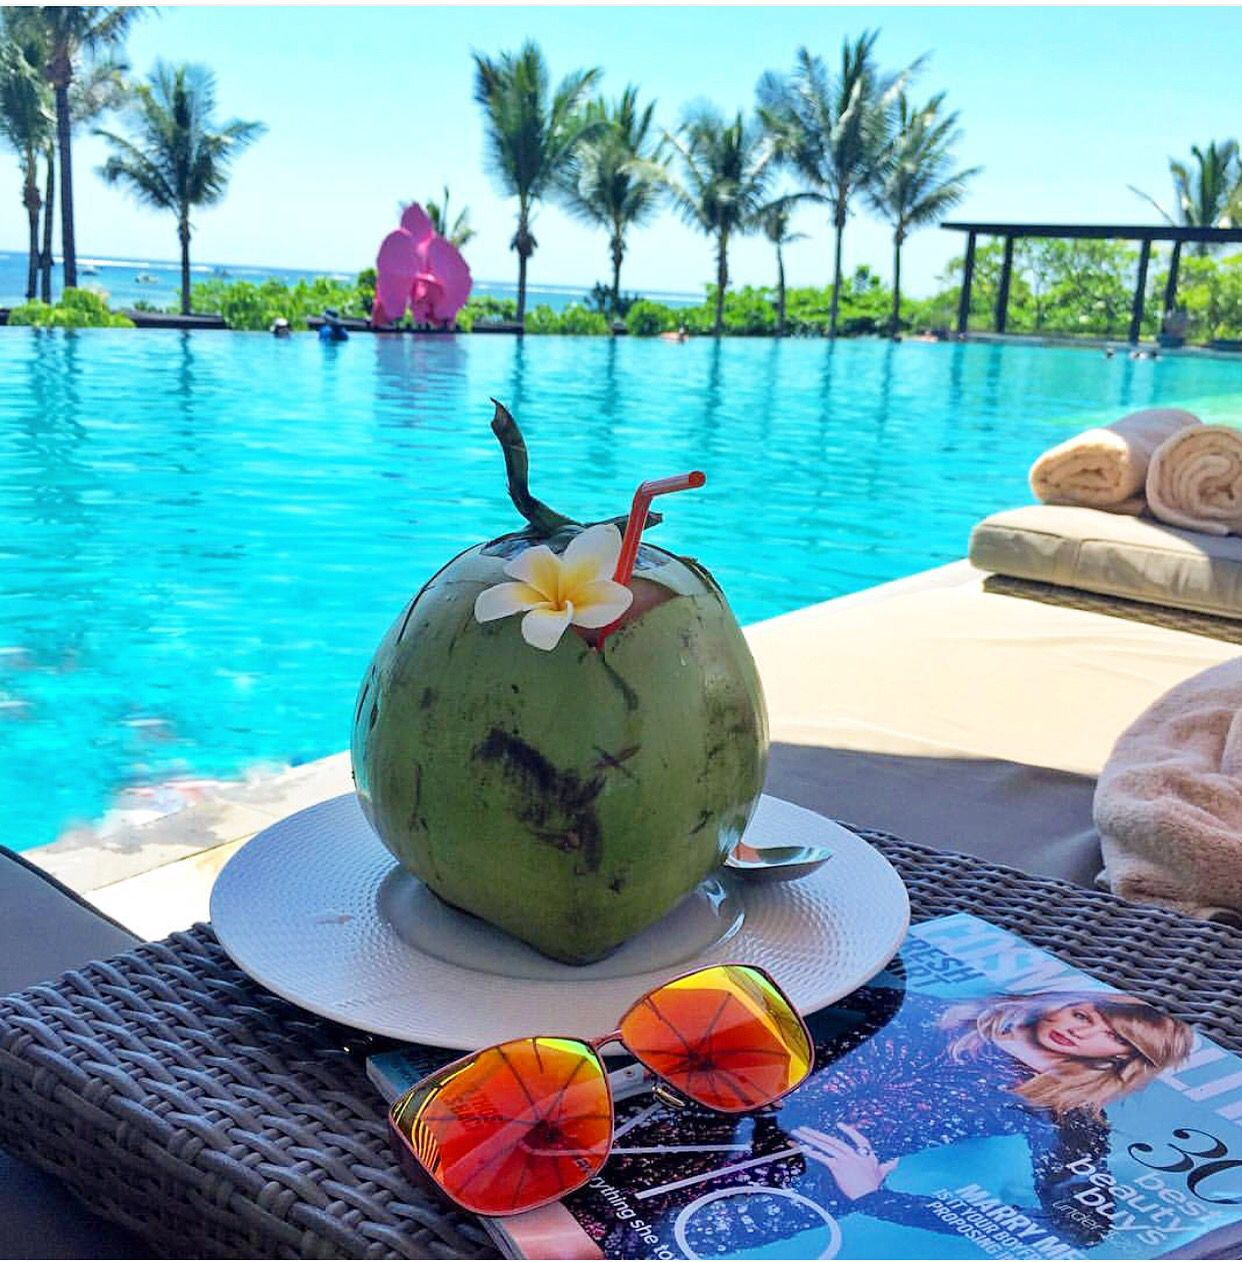 Sipping fresh young coconuts poolside at Fairmont Sanur